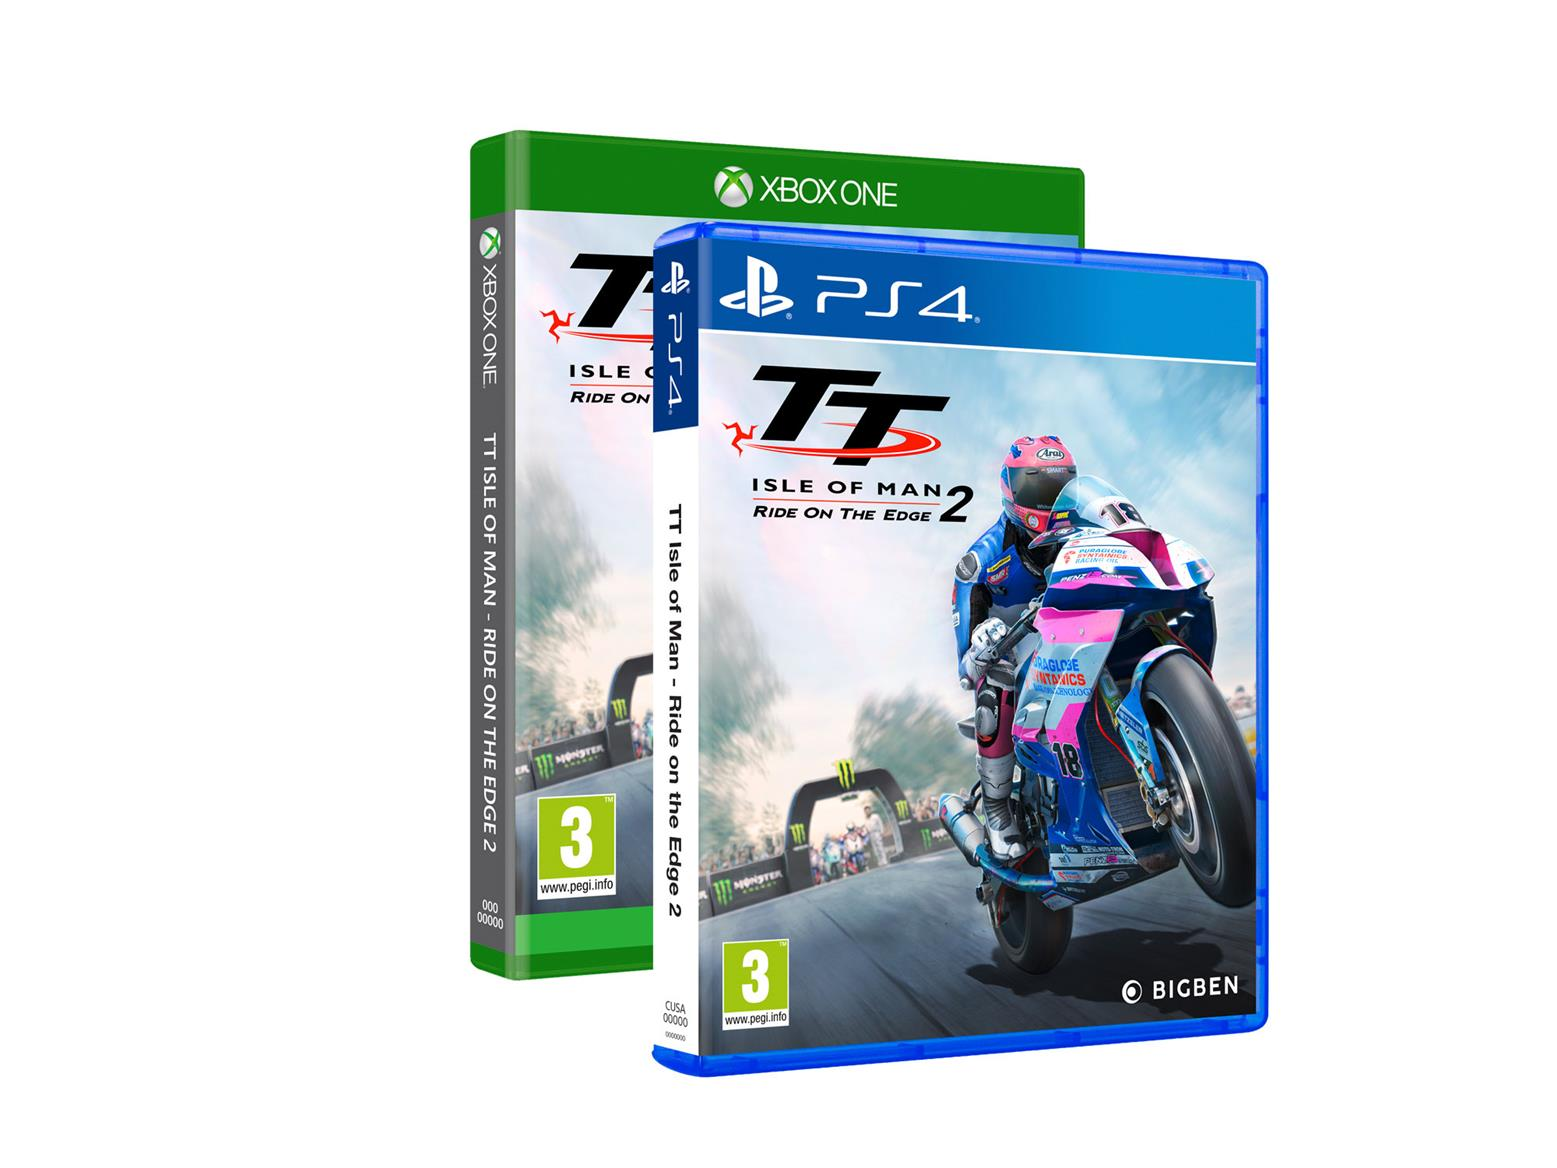 On the Edge 2 - the official Isle of Man TT Races game